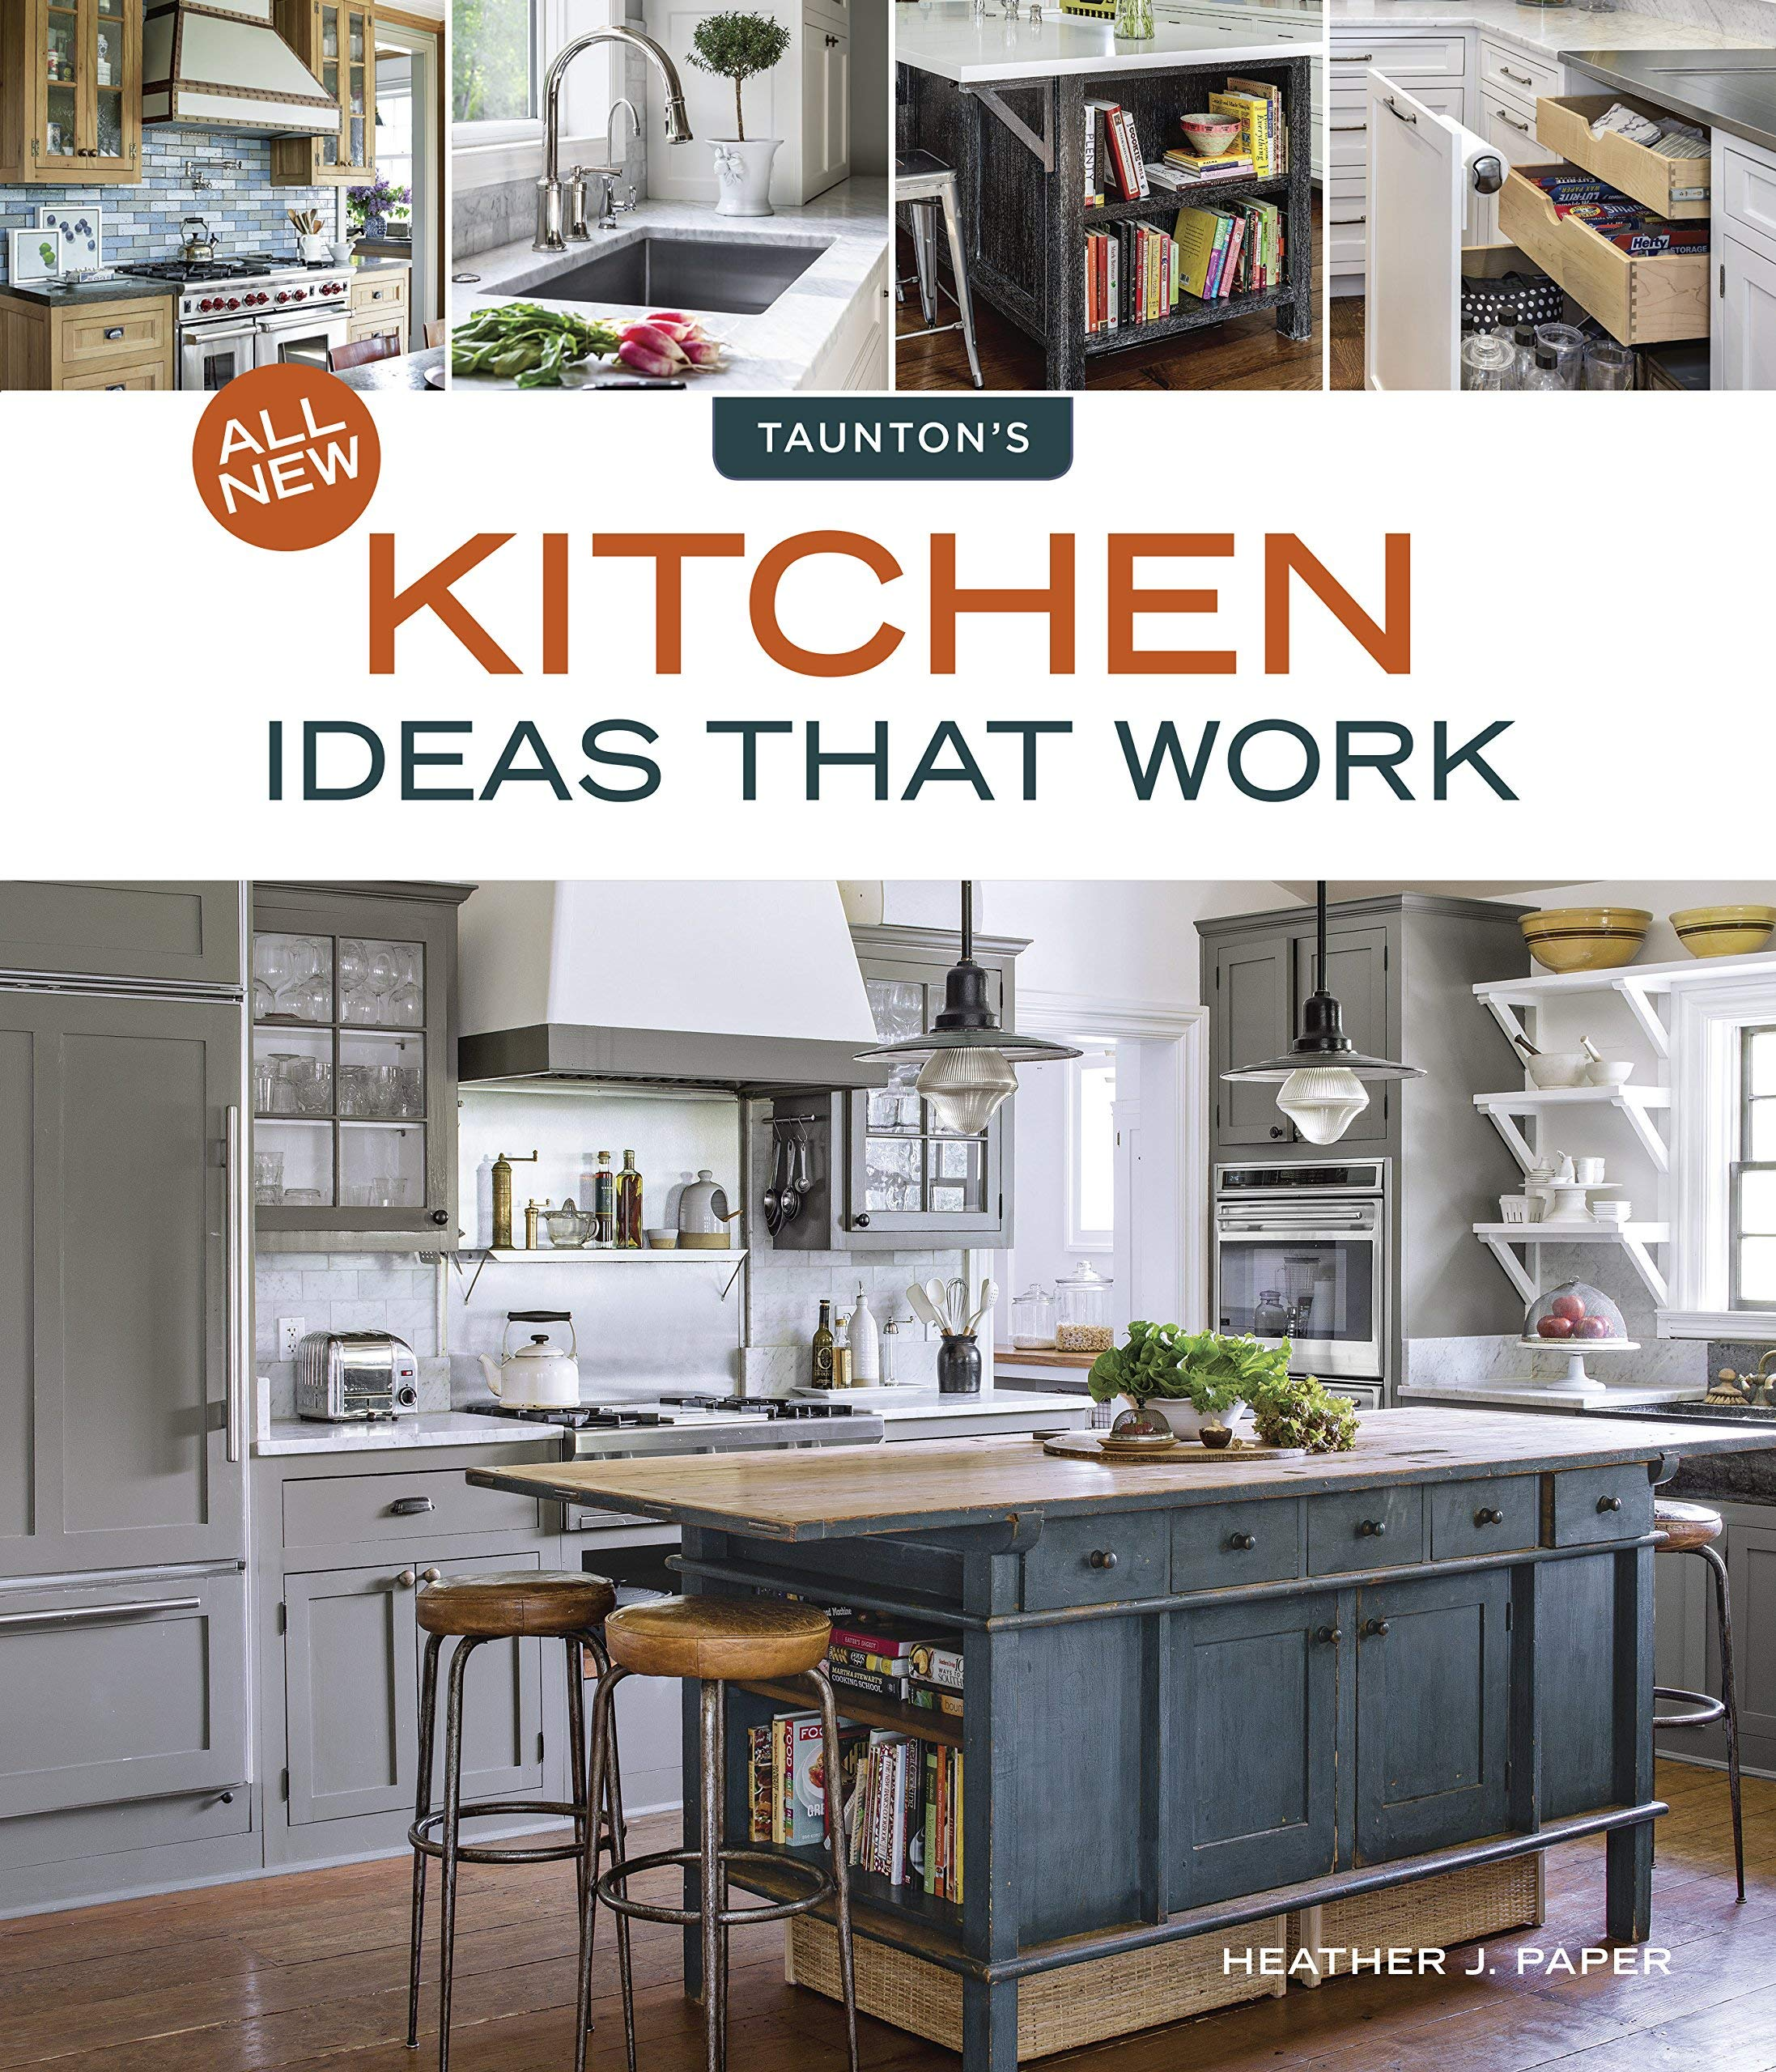 All New Kitchen Ideas That Work Paper Heather J 9781631869013 Amazon Com Books